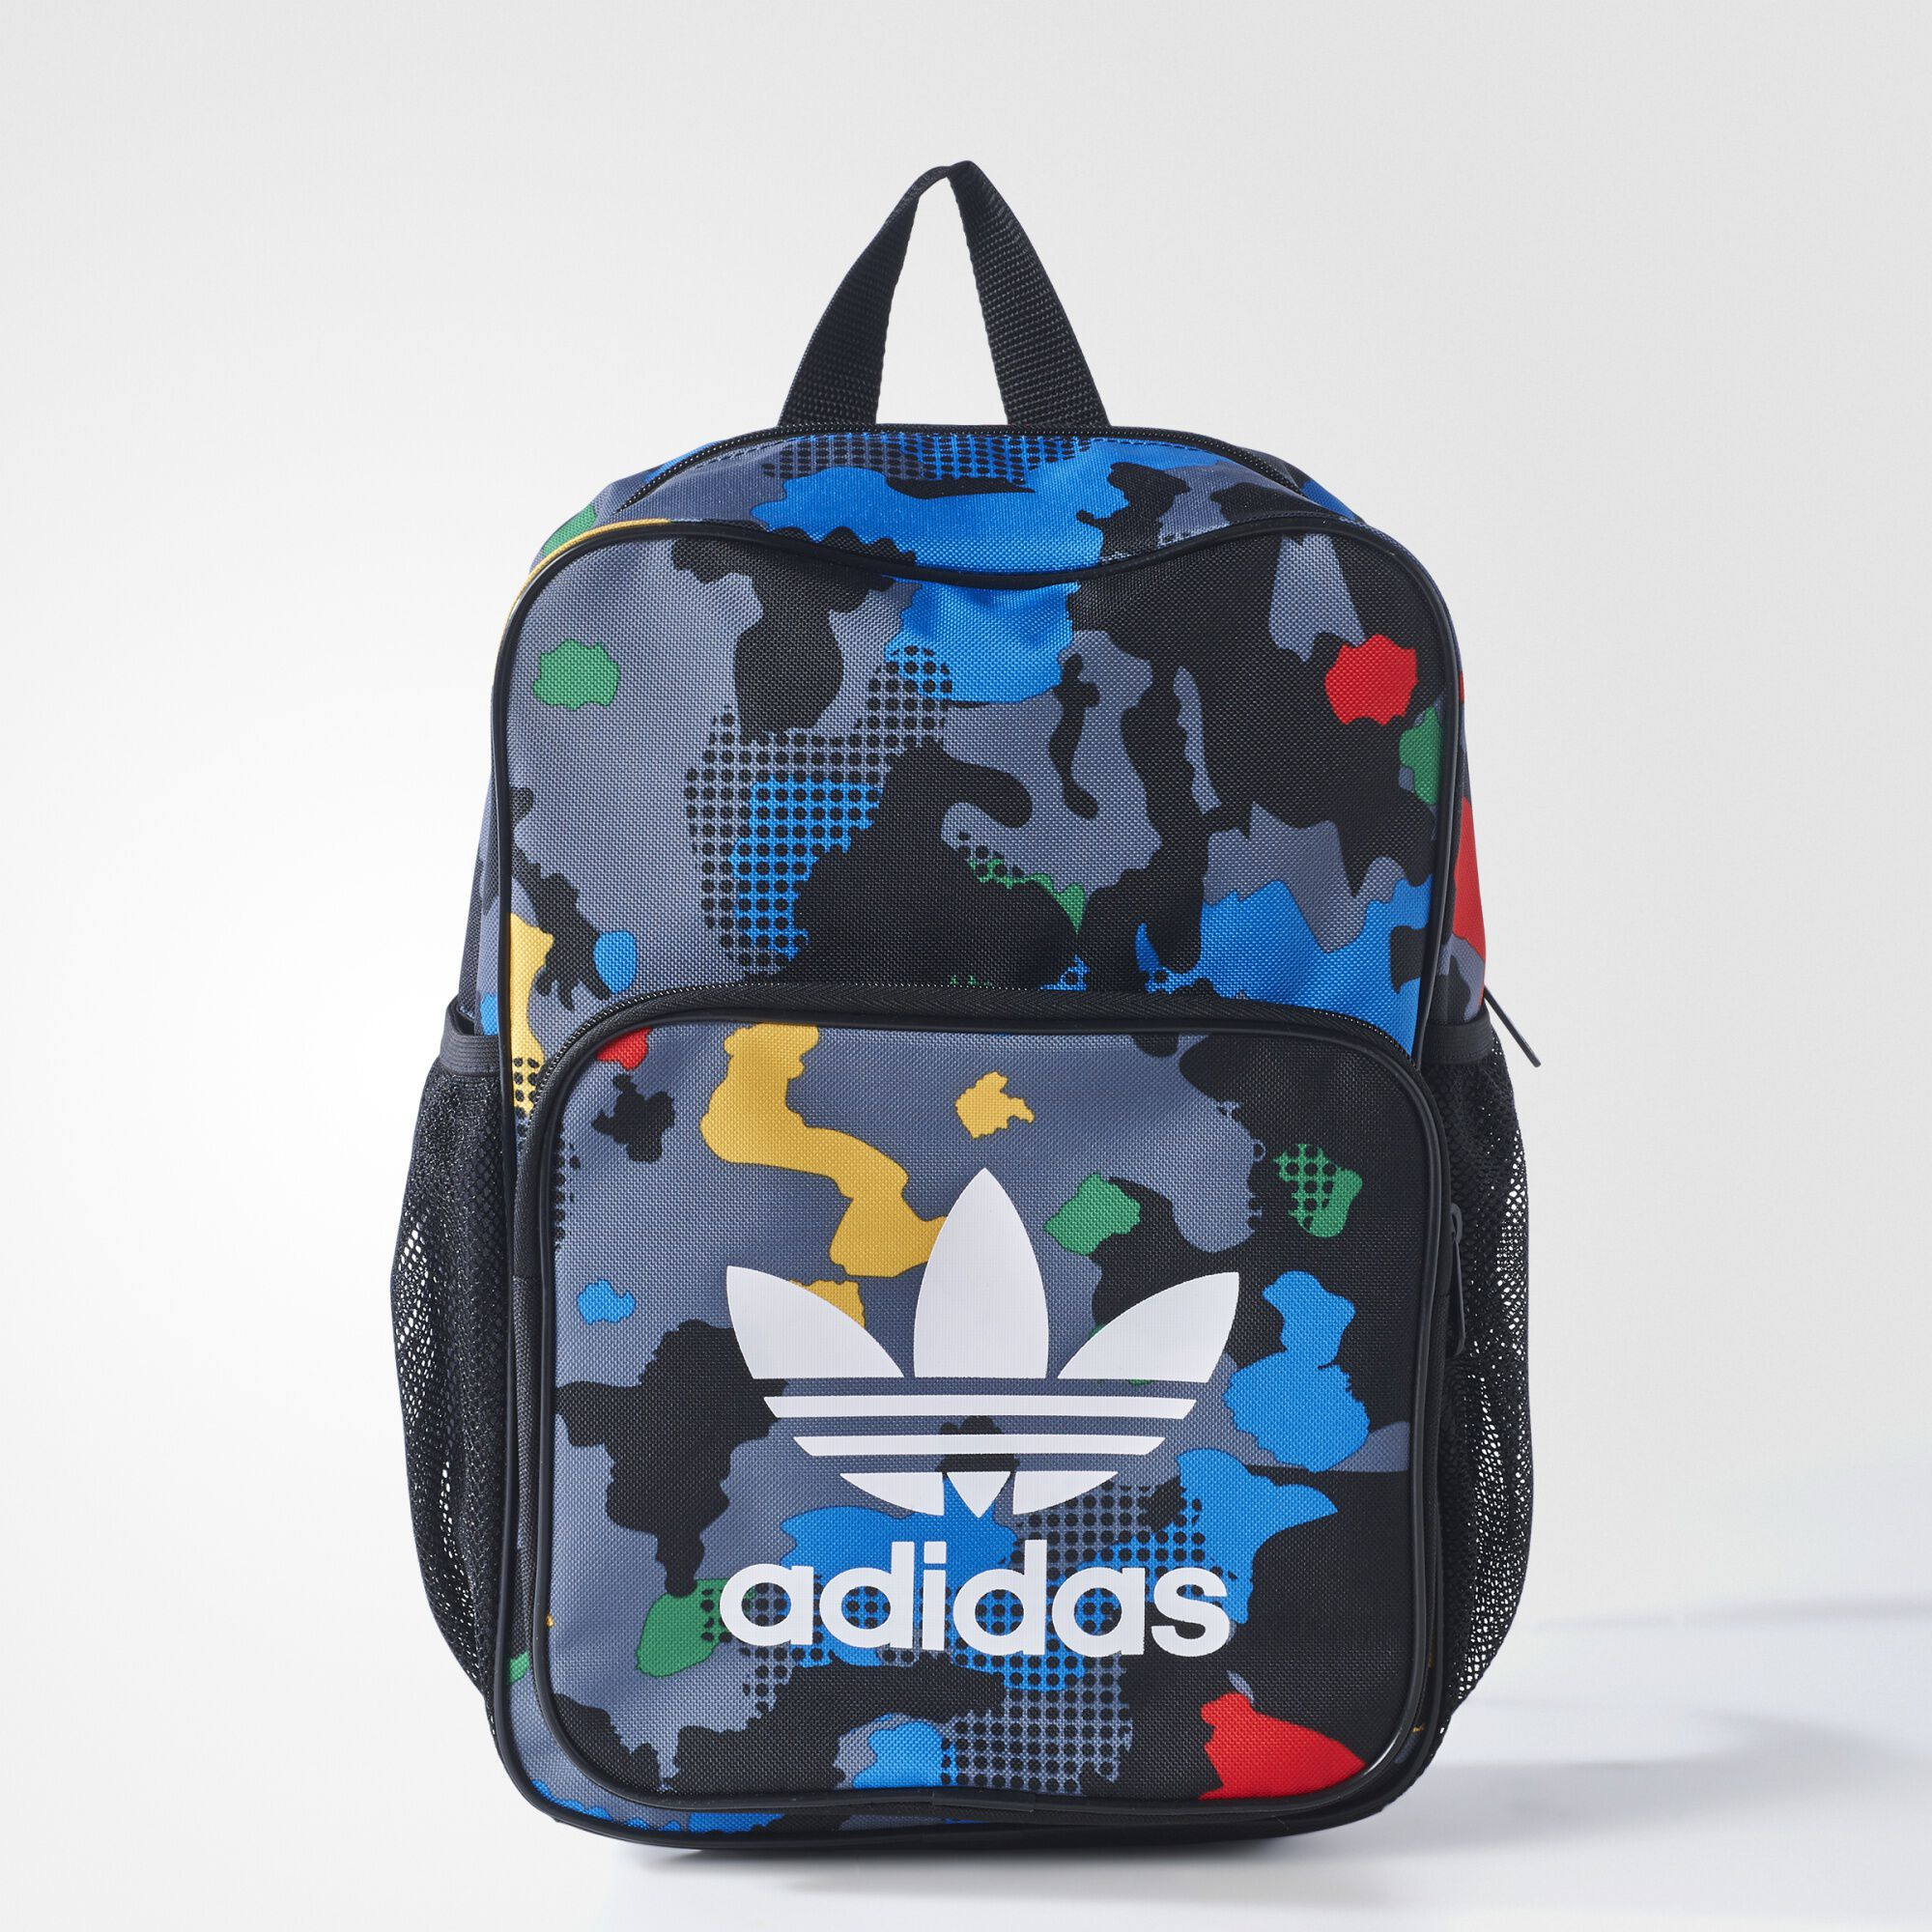 Buy adidas kids backpack   OFF42% Discounted b0e833c30d